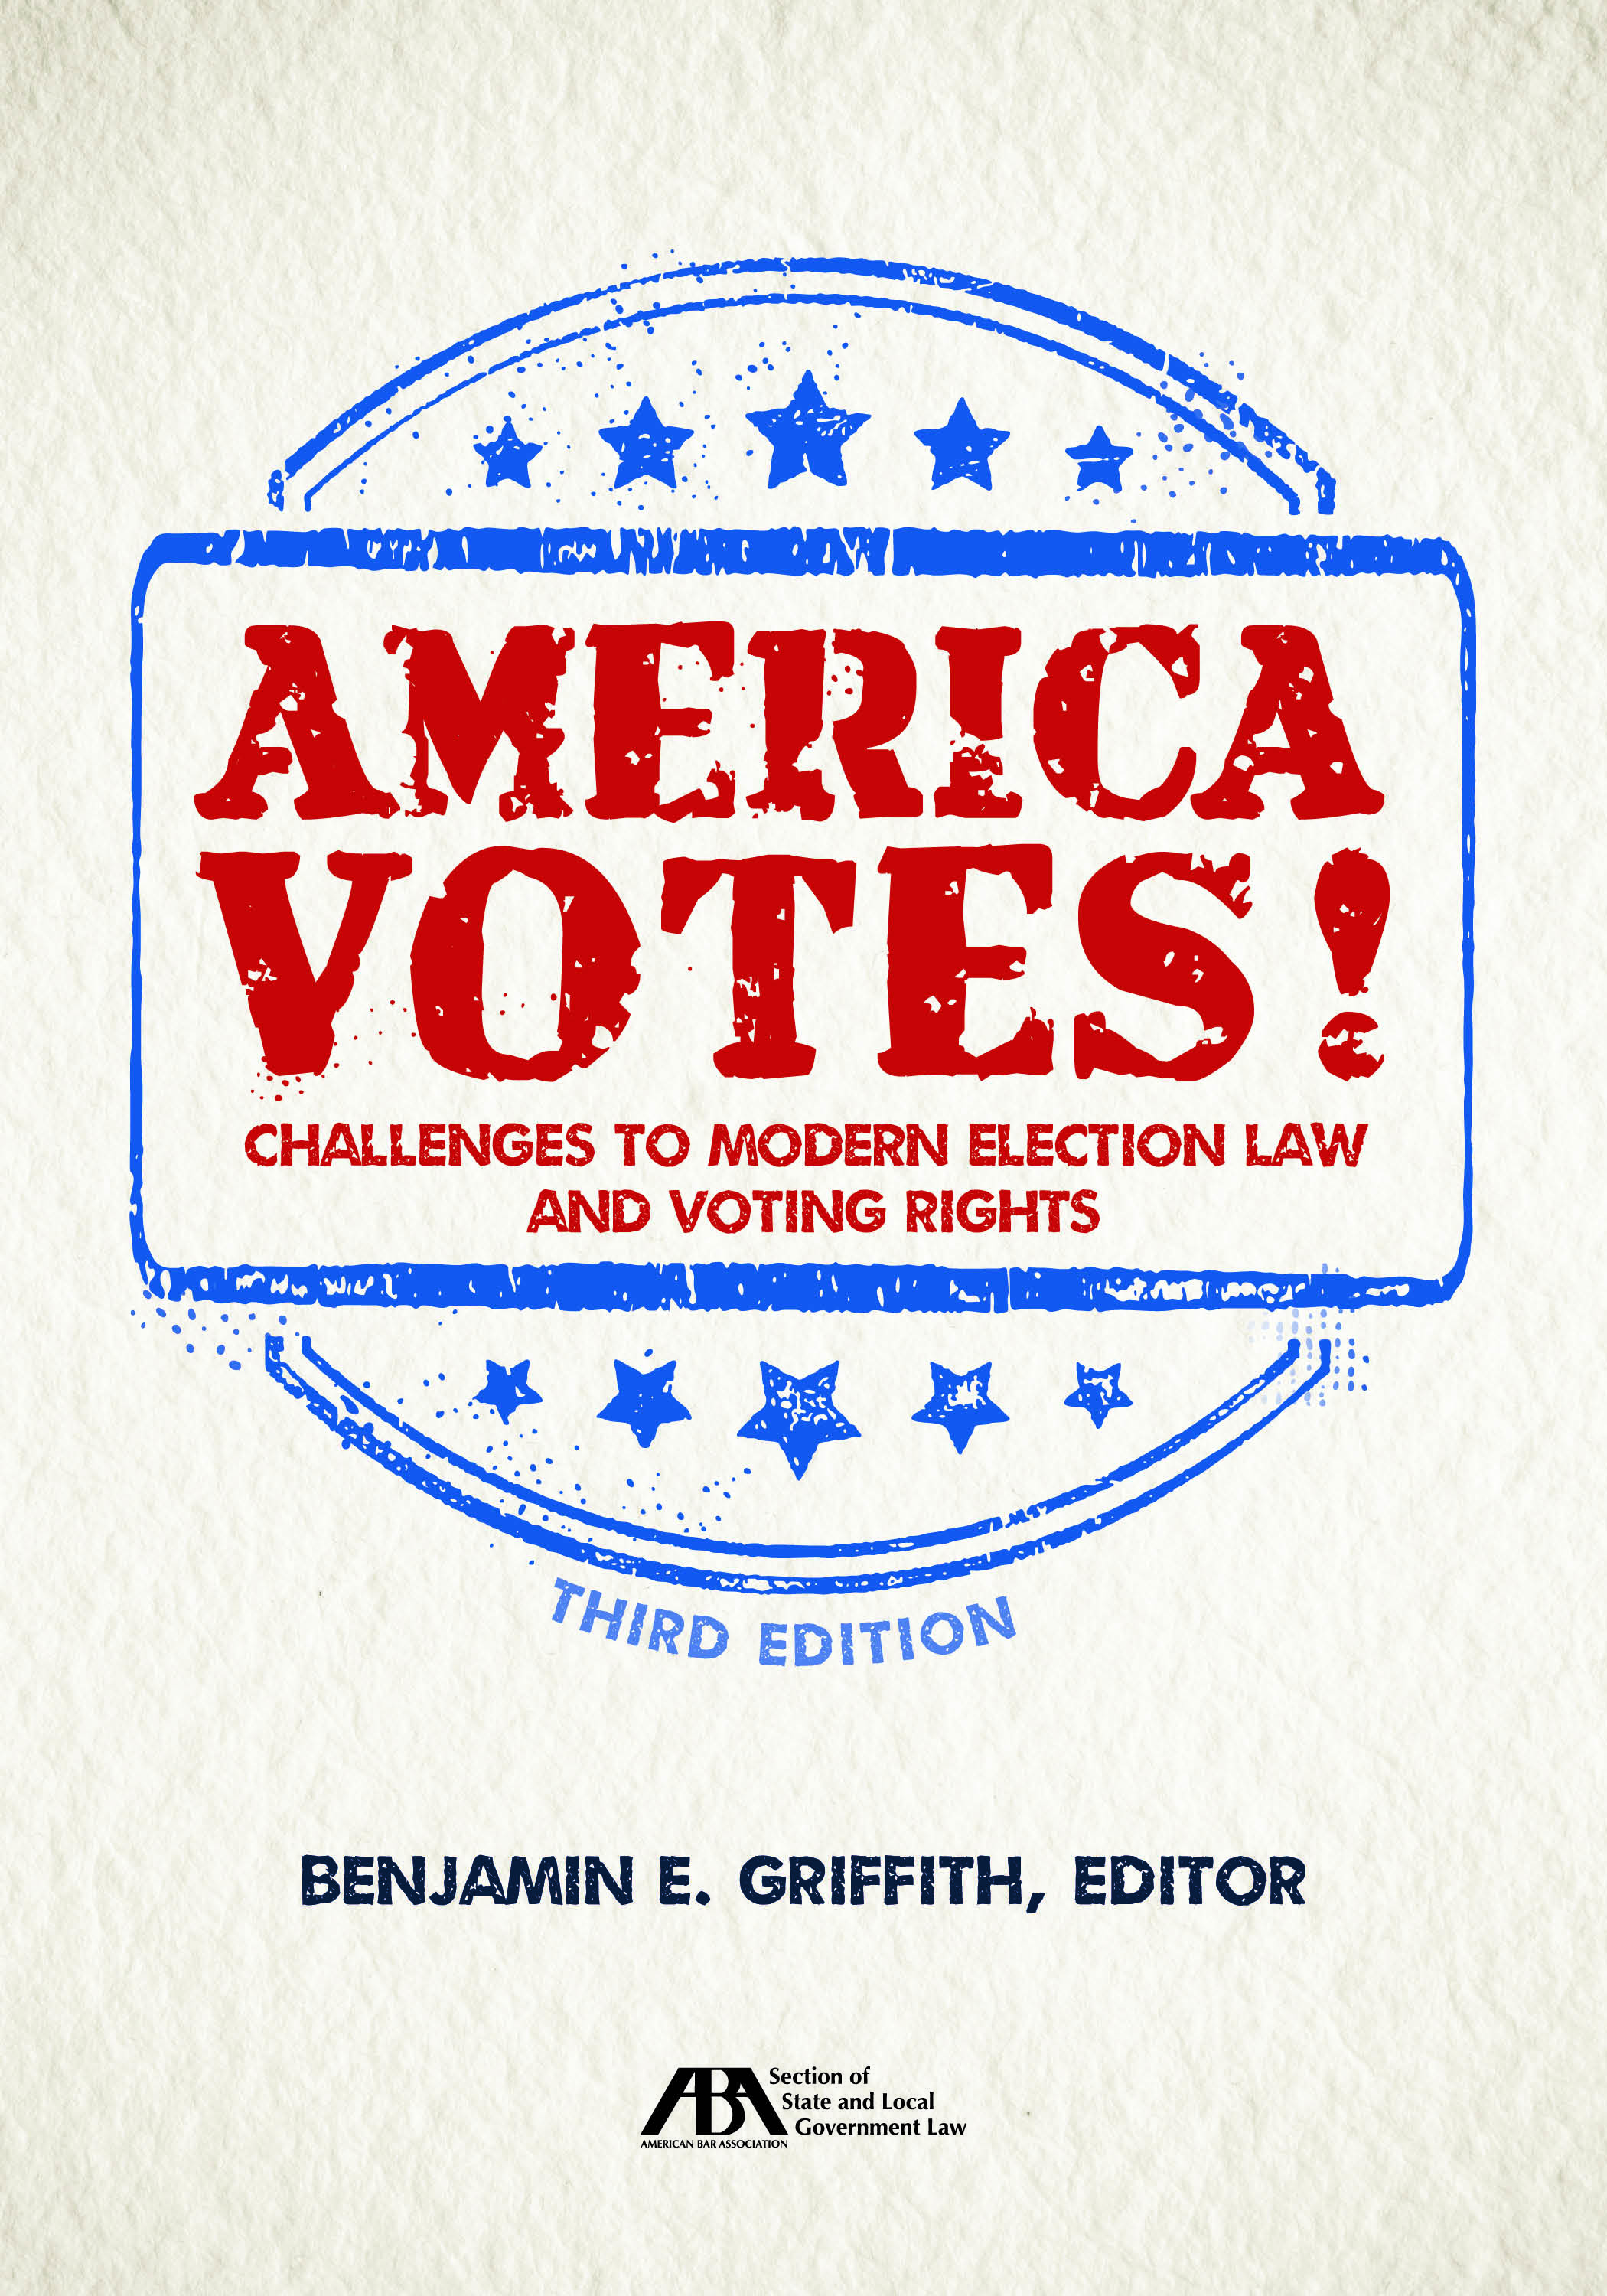 America Votes! A Guide to Modern Election Law and Voting Rights, Third Edition